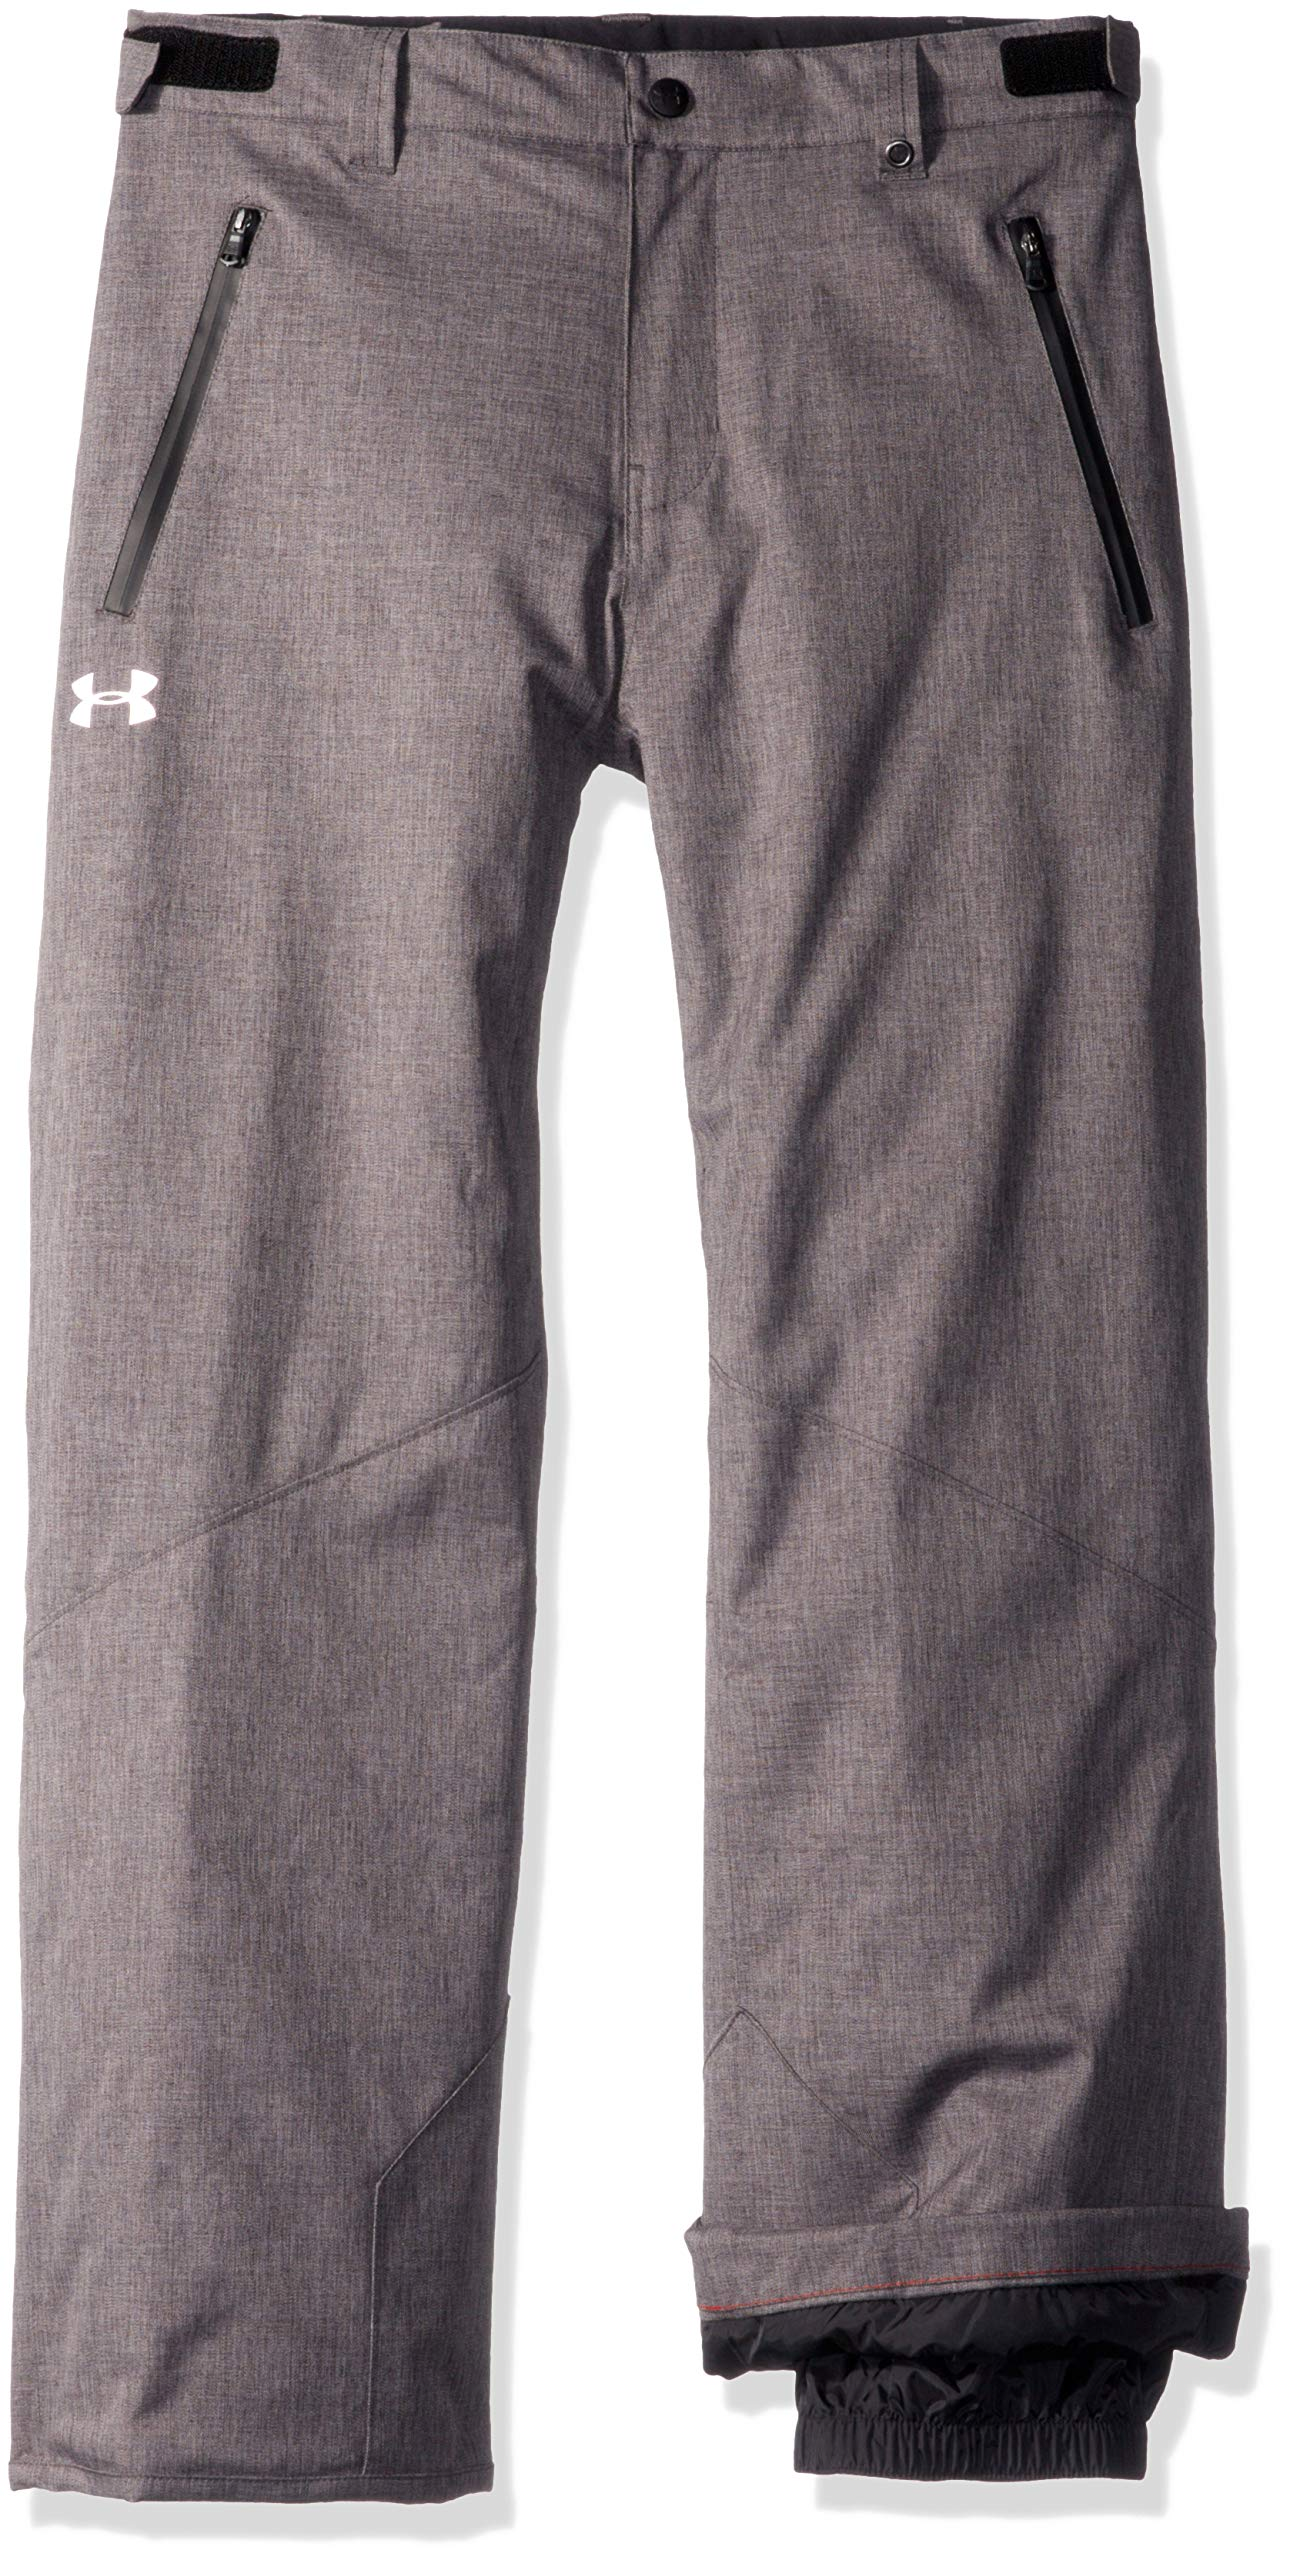 Under Armour Boys' Big Heather Rooter Insulated Pant, Carbon, Small (8) by Under Armour